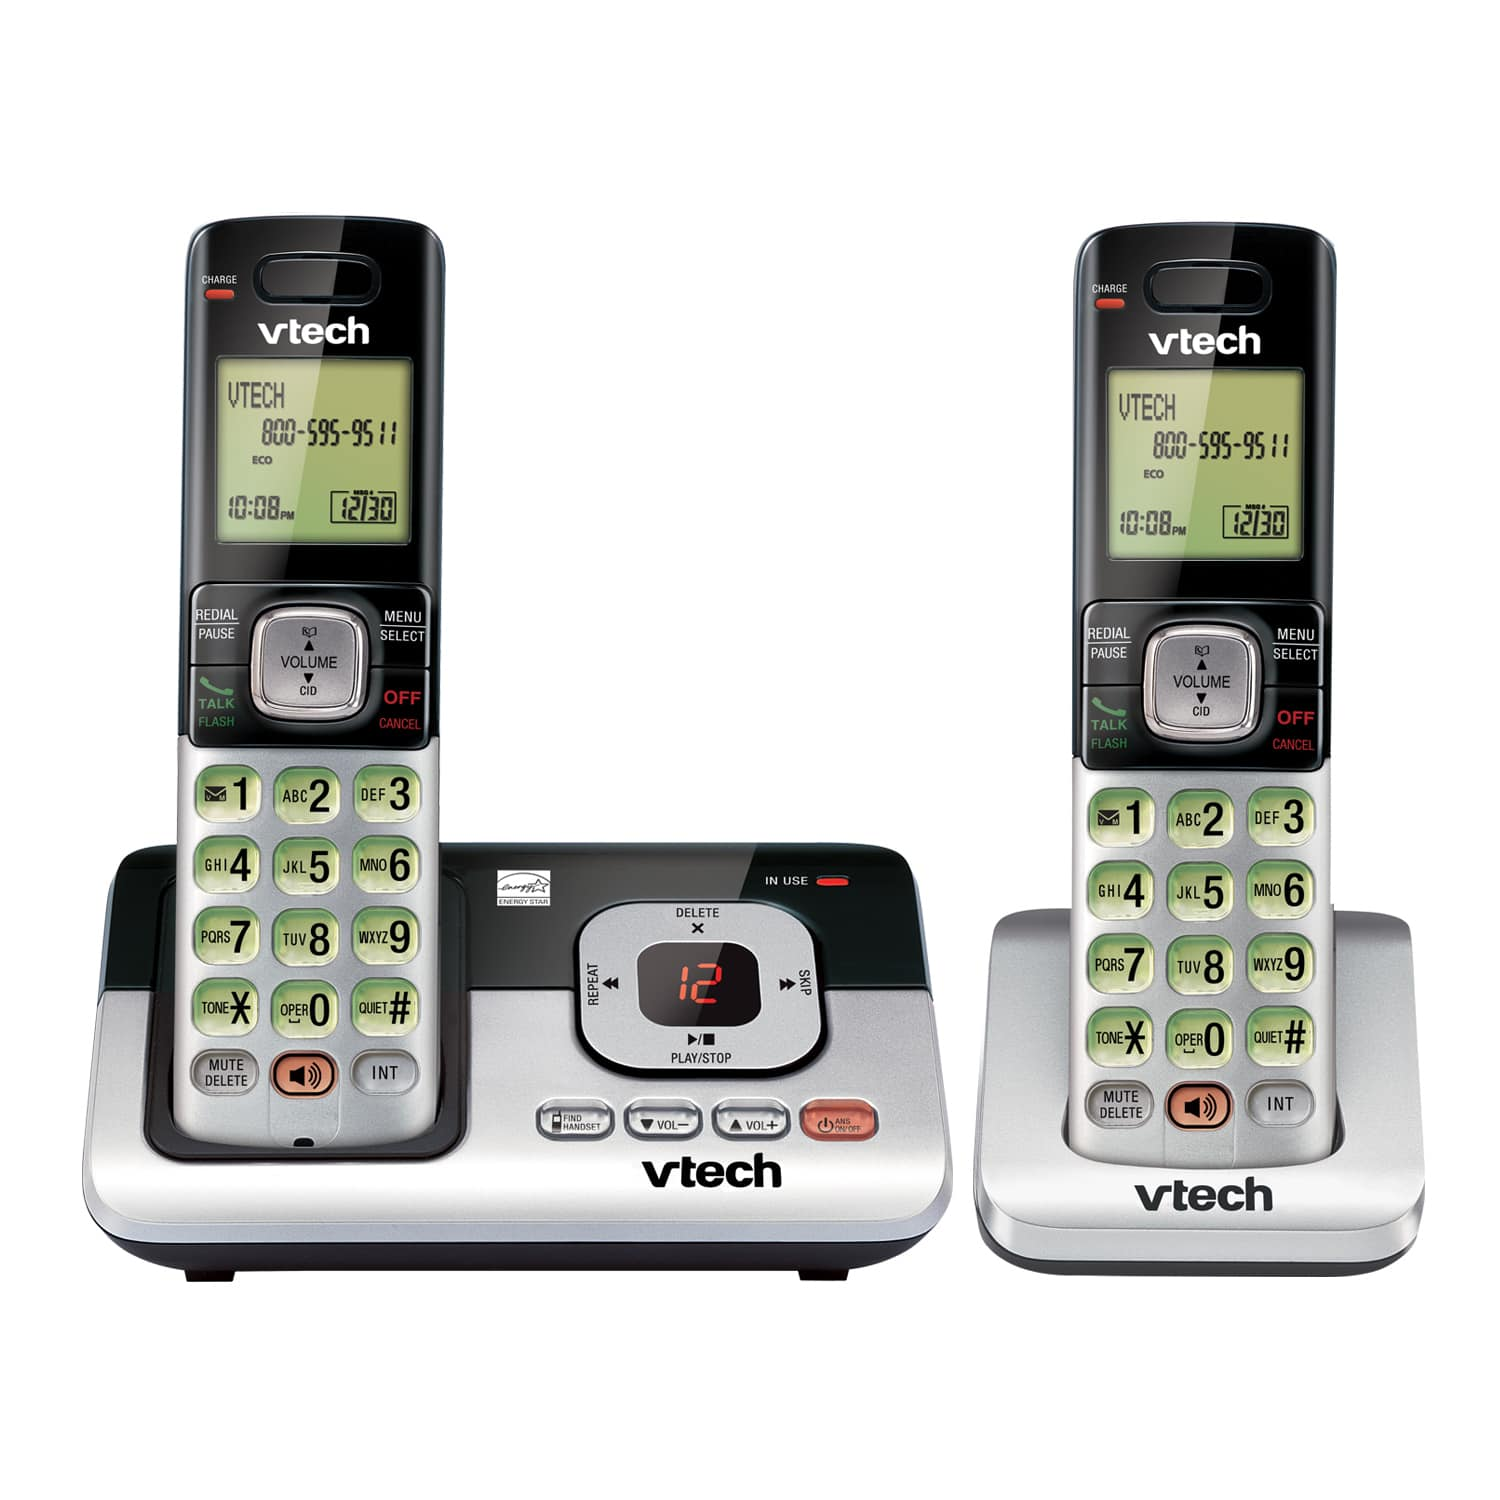 2 handset answering system with caller id call waiting cs6829 2 rh vtechphones com VTech Handset Phone System VTech Handset Cordless Phone 1